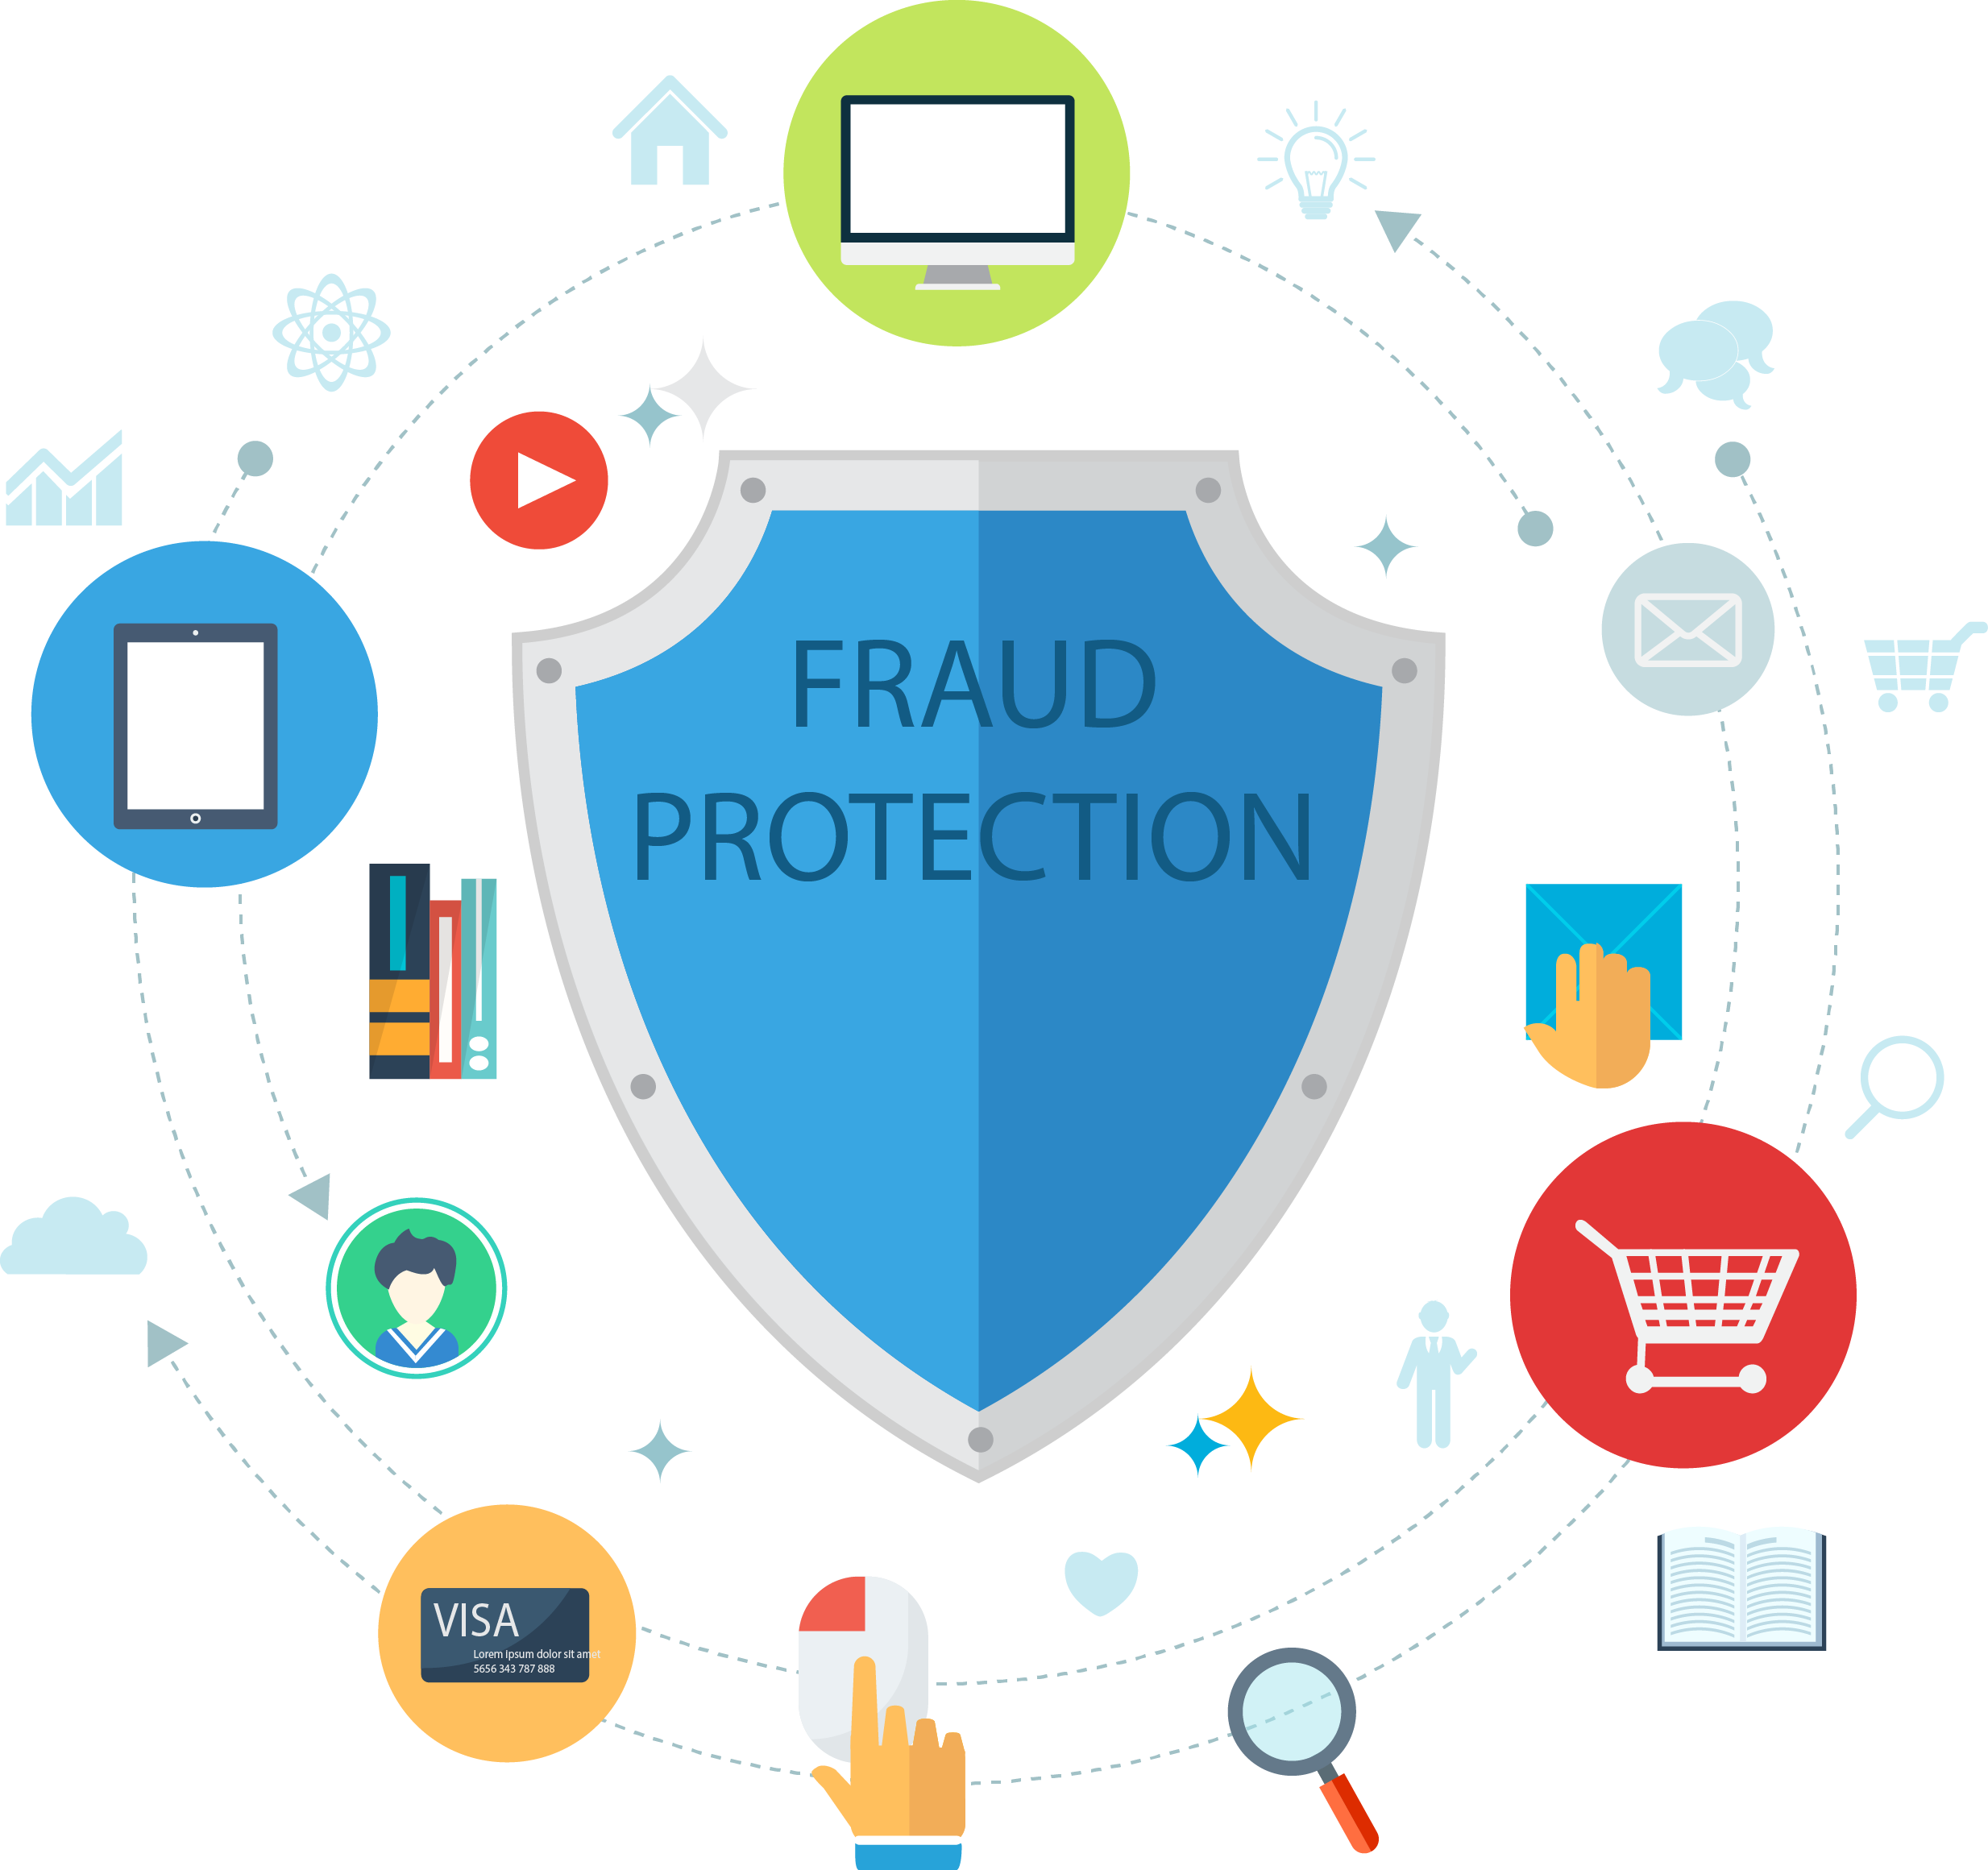 Fraud protection adamsea buying. Proud clipart obscenity